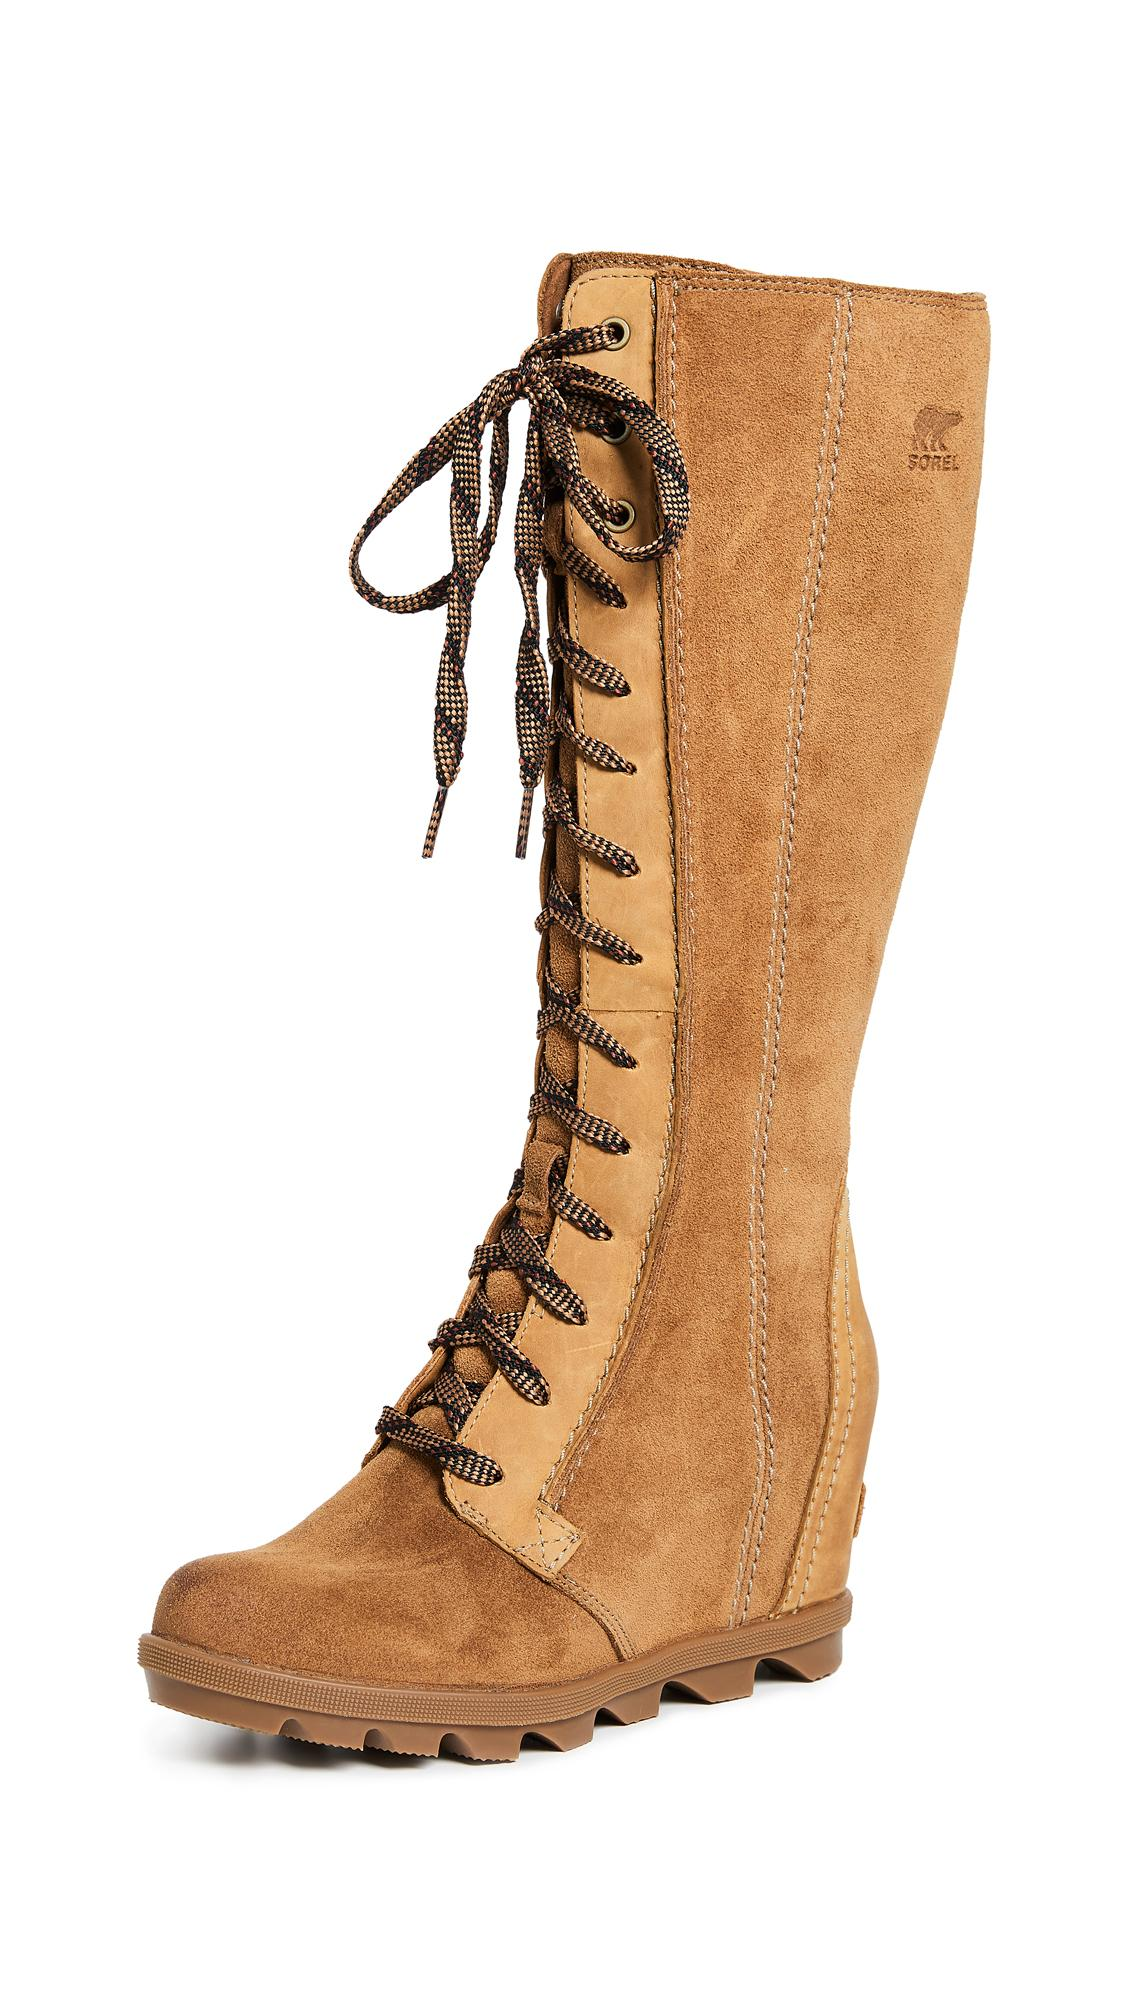 819d75b4662 Sorel Joan Of Arctic Wedge Ii Tall Boots In Camel Brown